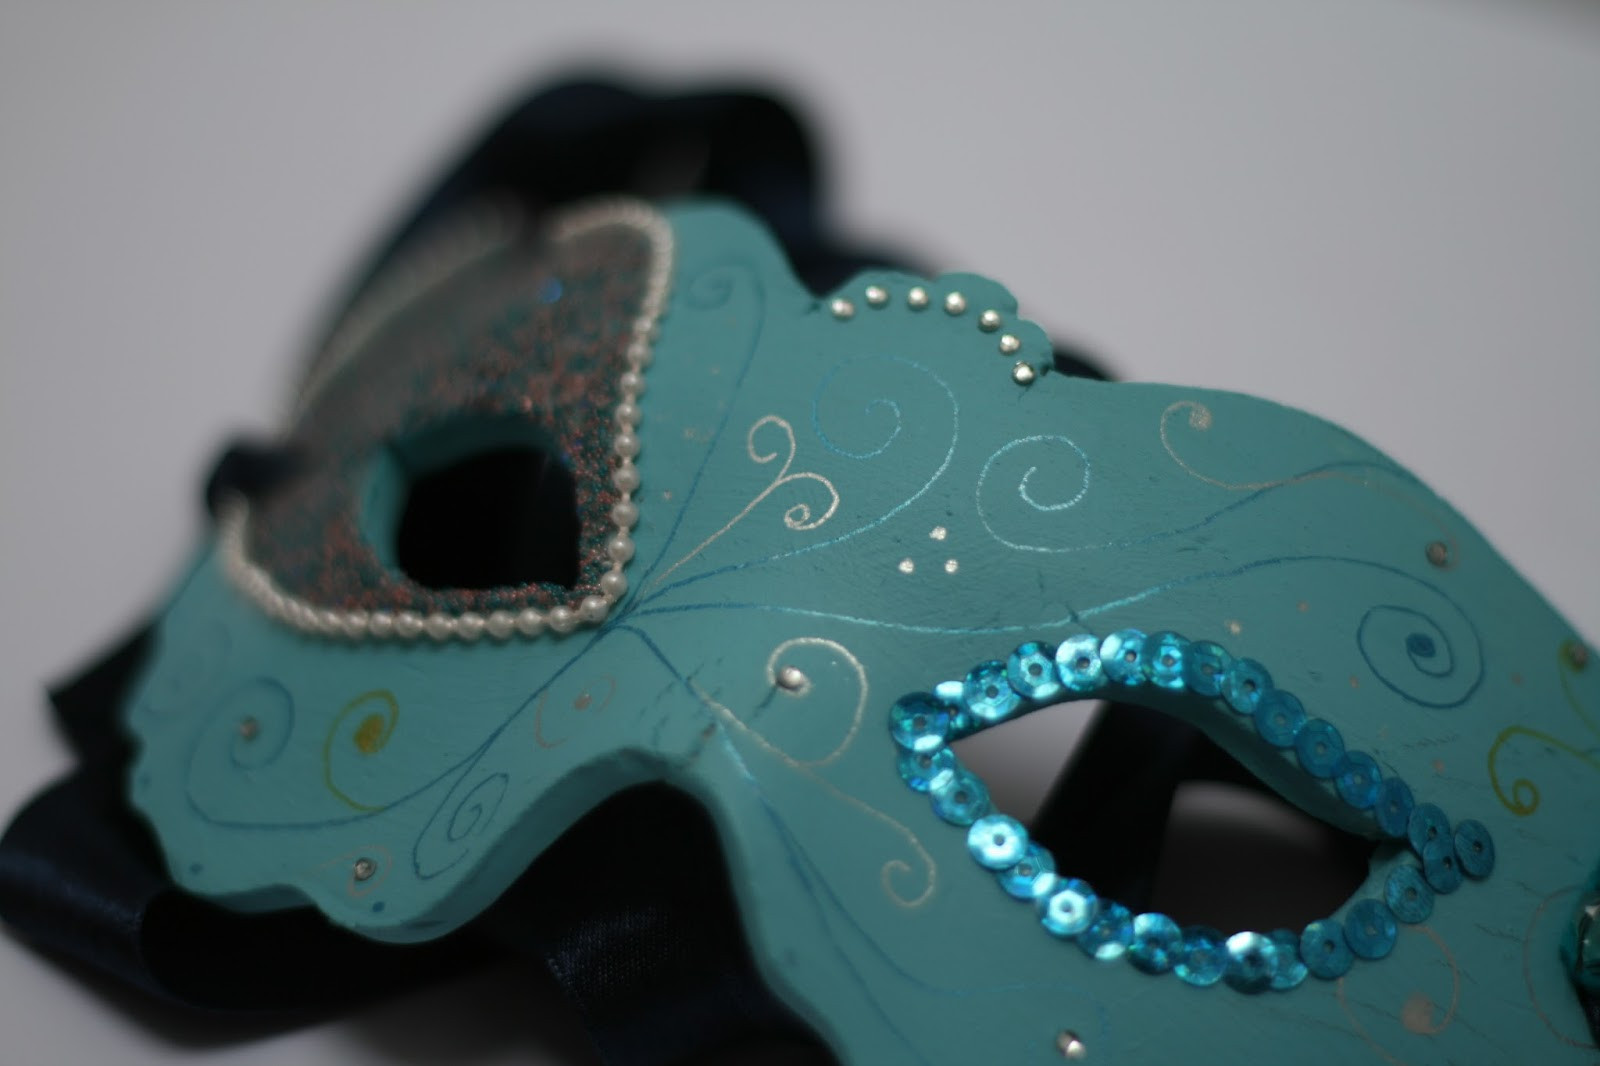 Best ideas about DIY Masquerade Masks . Save or Pin Masquerade Mask DIY Oh Gosh Now.